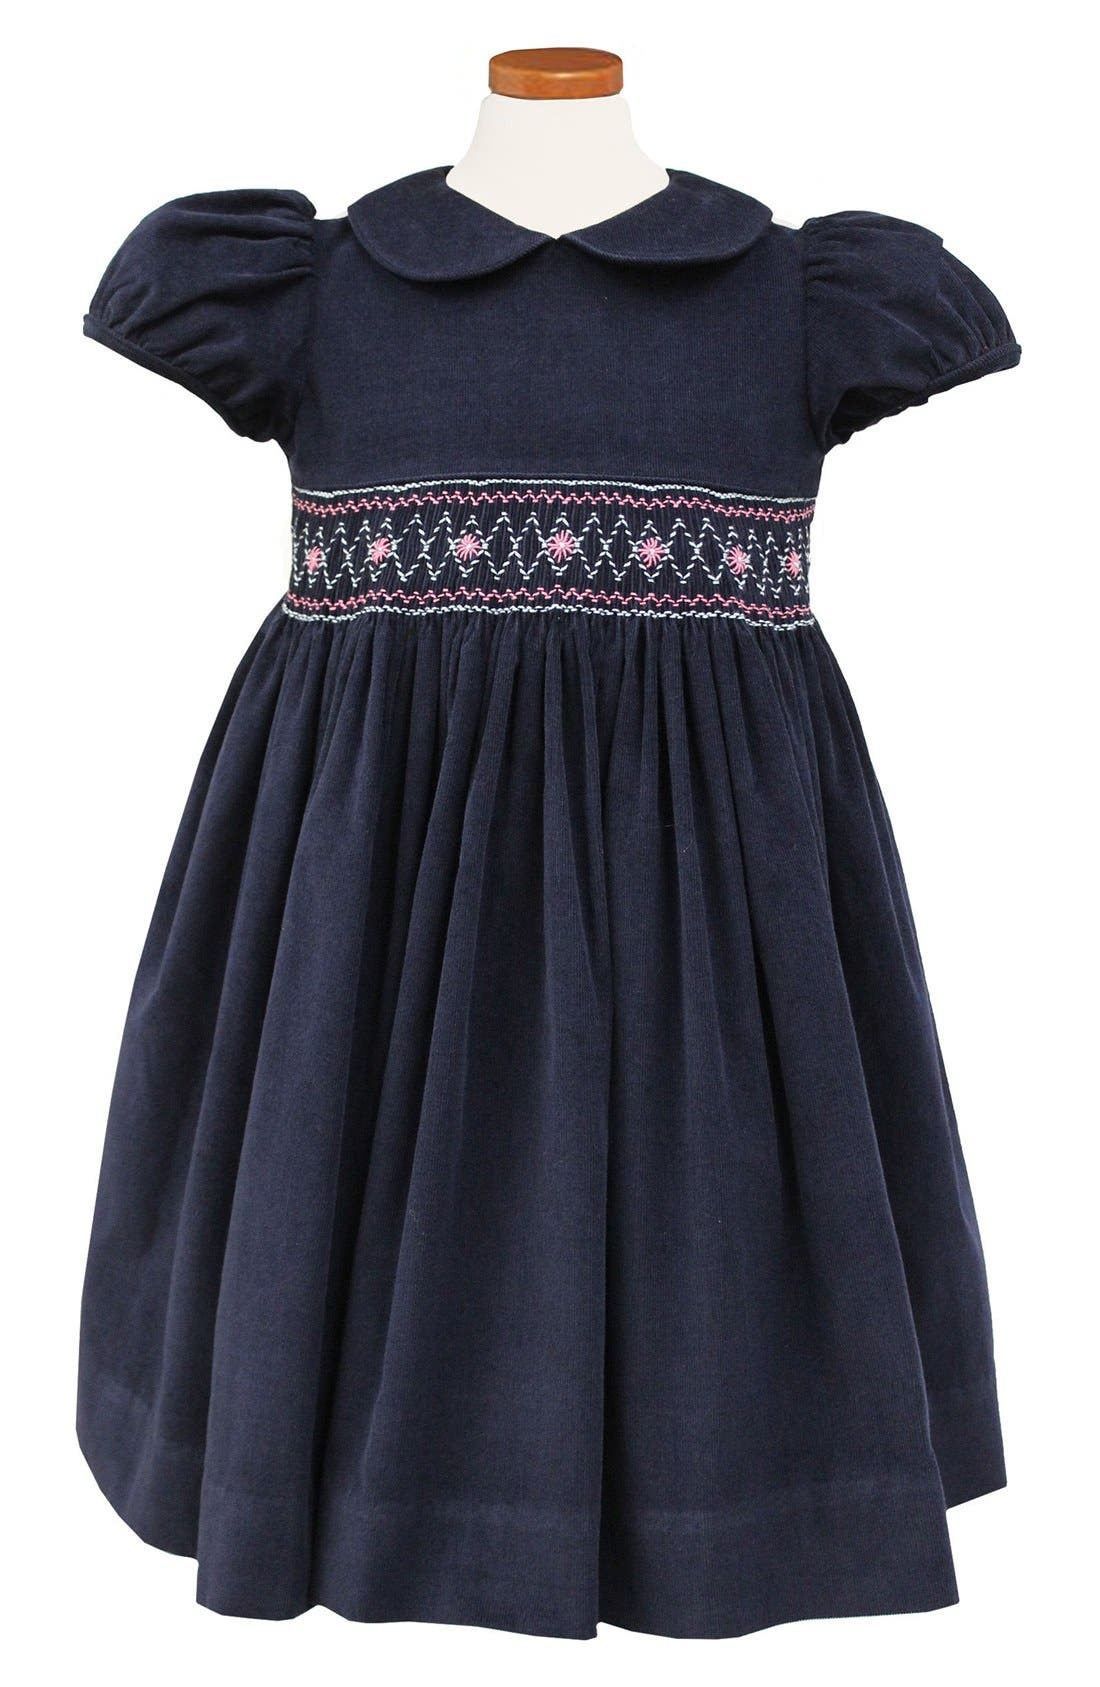 Embroidered Smocked Waist Dress,                             Main thumbnail 1, color,